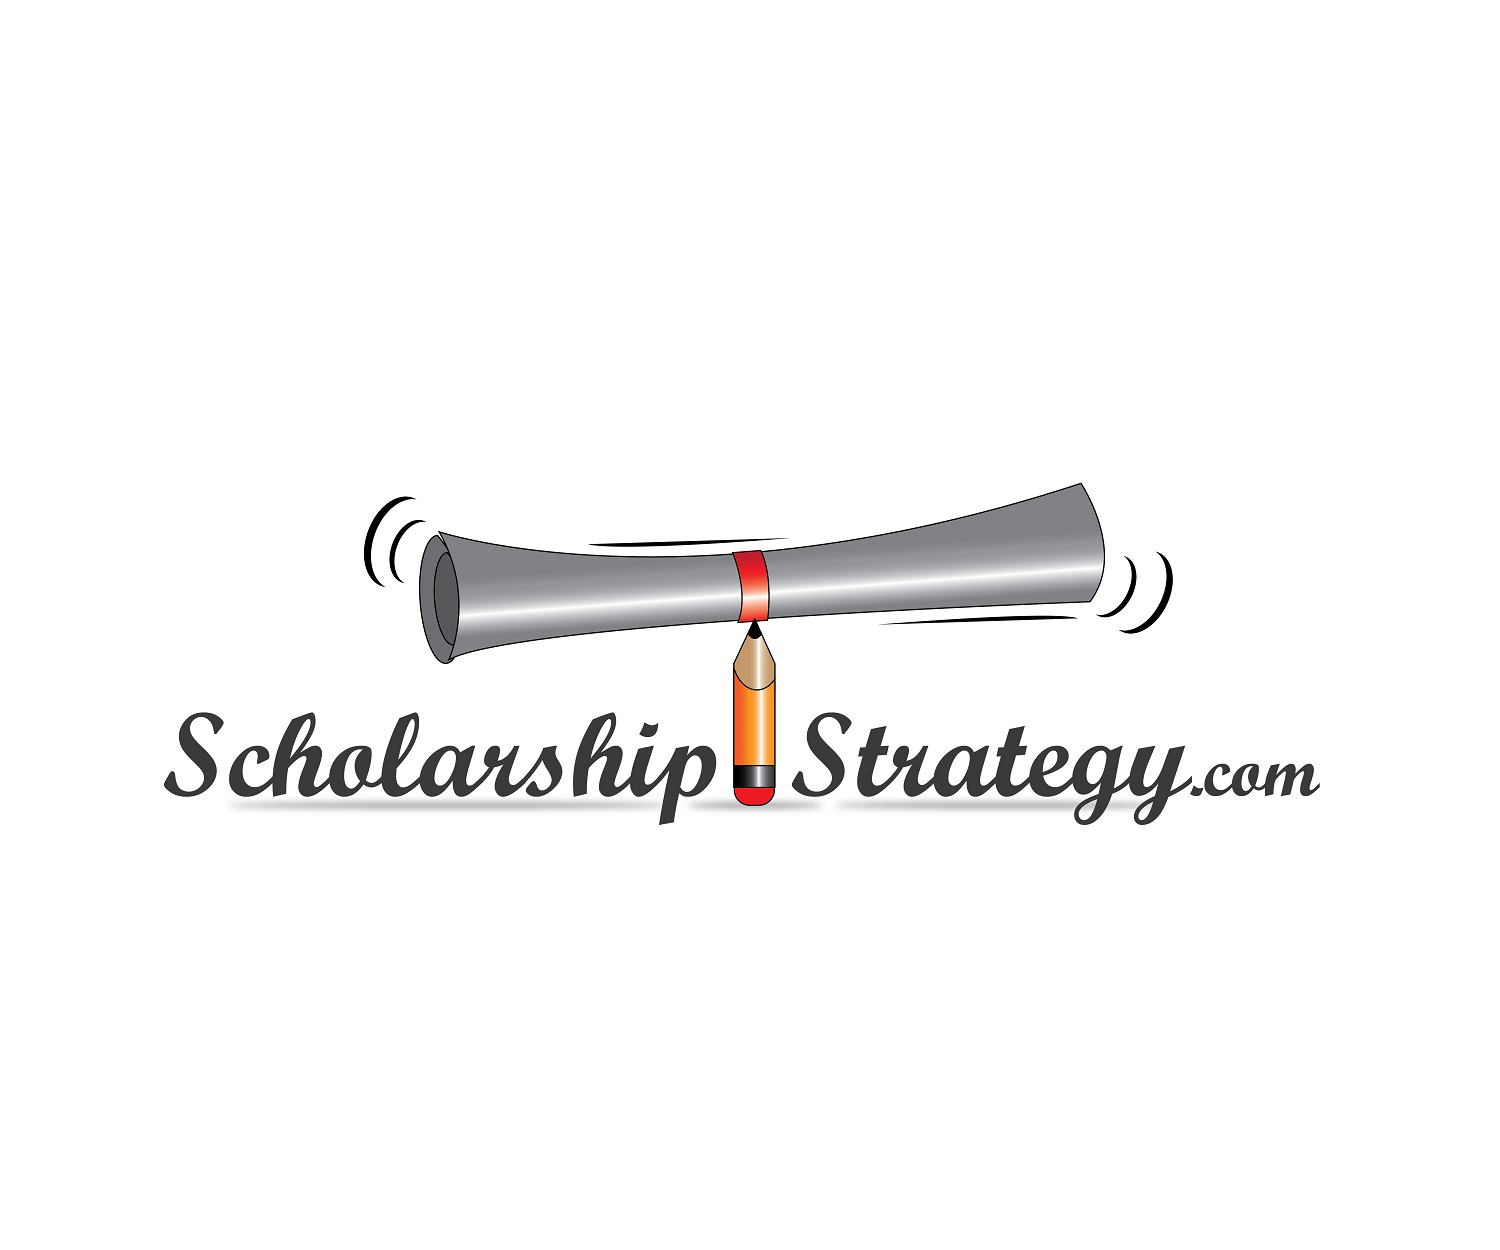 Logo Design by jhunzkie24 - Entry No. 52 in the Logo Design Contest Captivating Logo Design for Scholarshipstrategy.com.